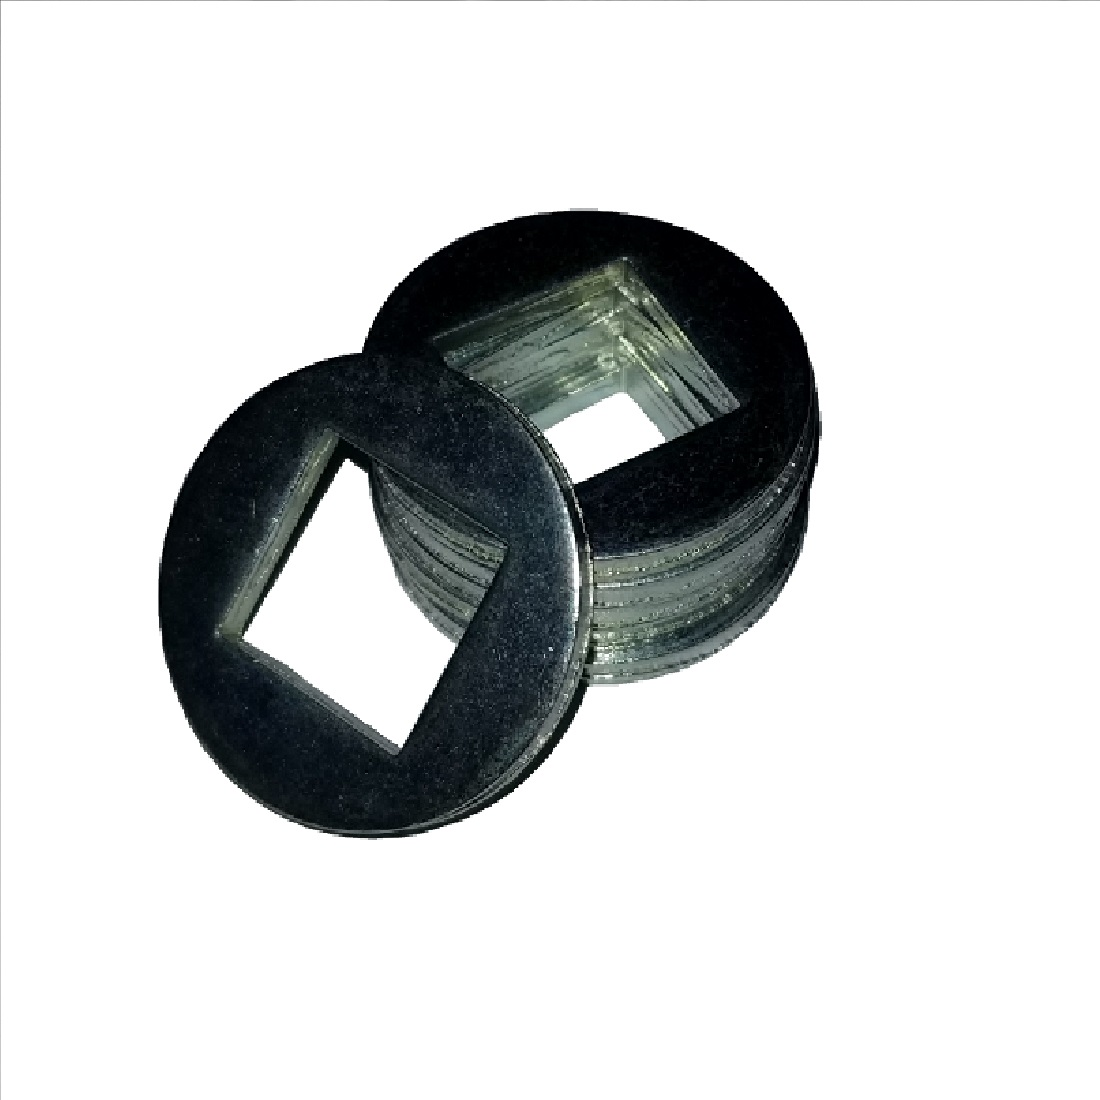 Square ID Washer - 0.437 ID, 1.375 OD, 0.090 Thick, Low Carbon Steel - Soft, Zinc & Yellow